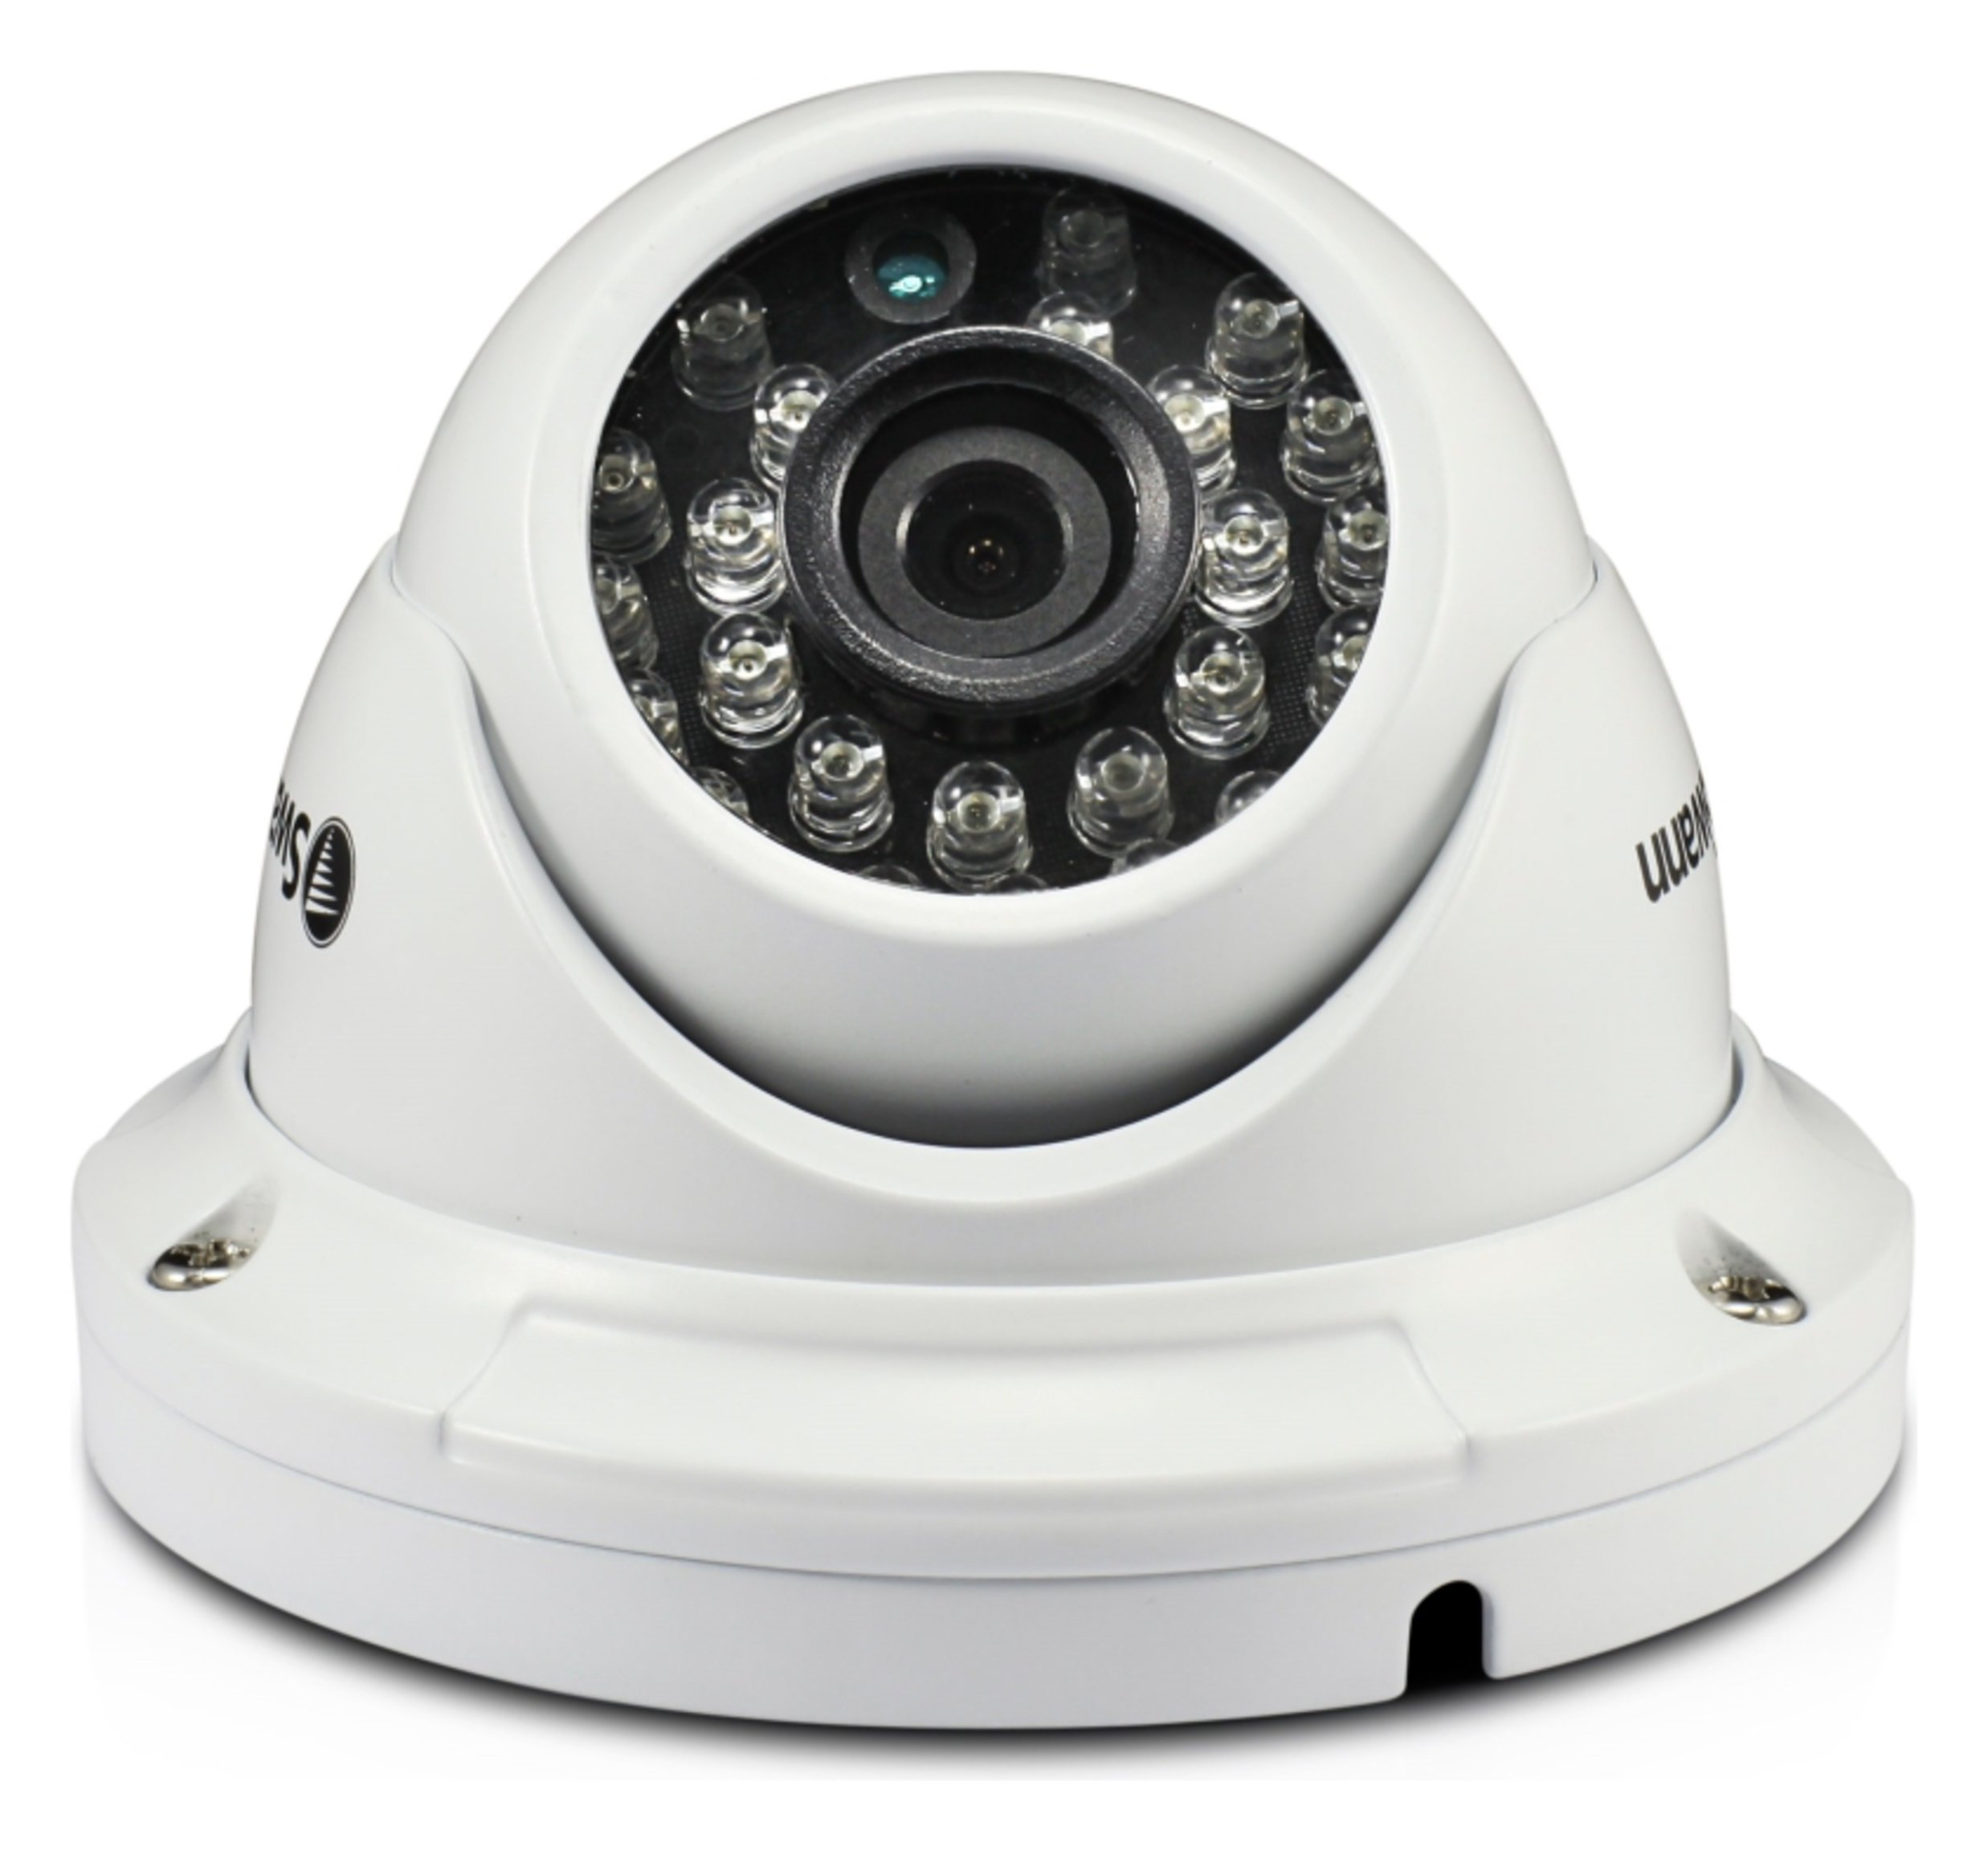 Swann CCTV 1080p Dome Camera - Twin Pack